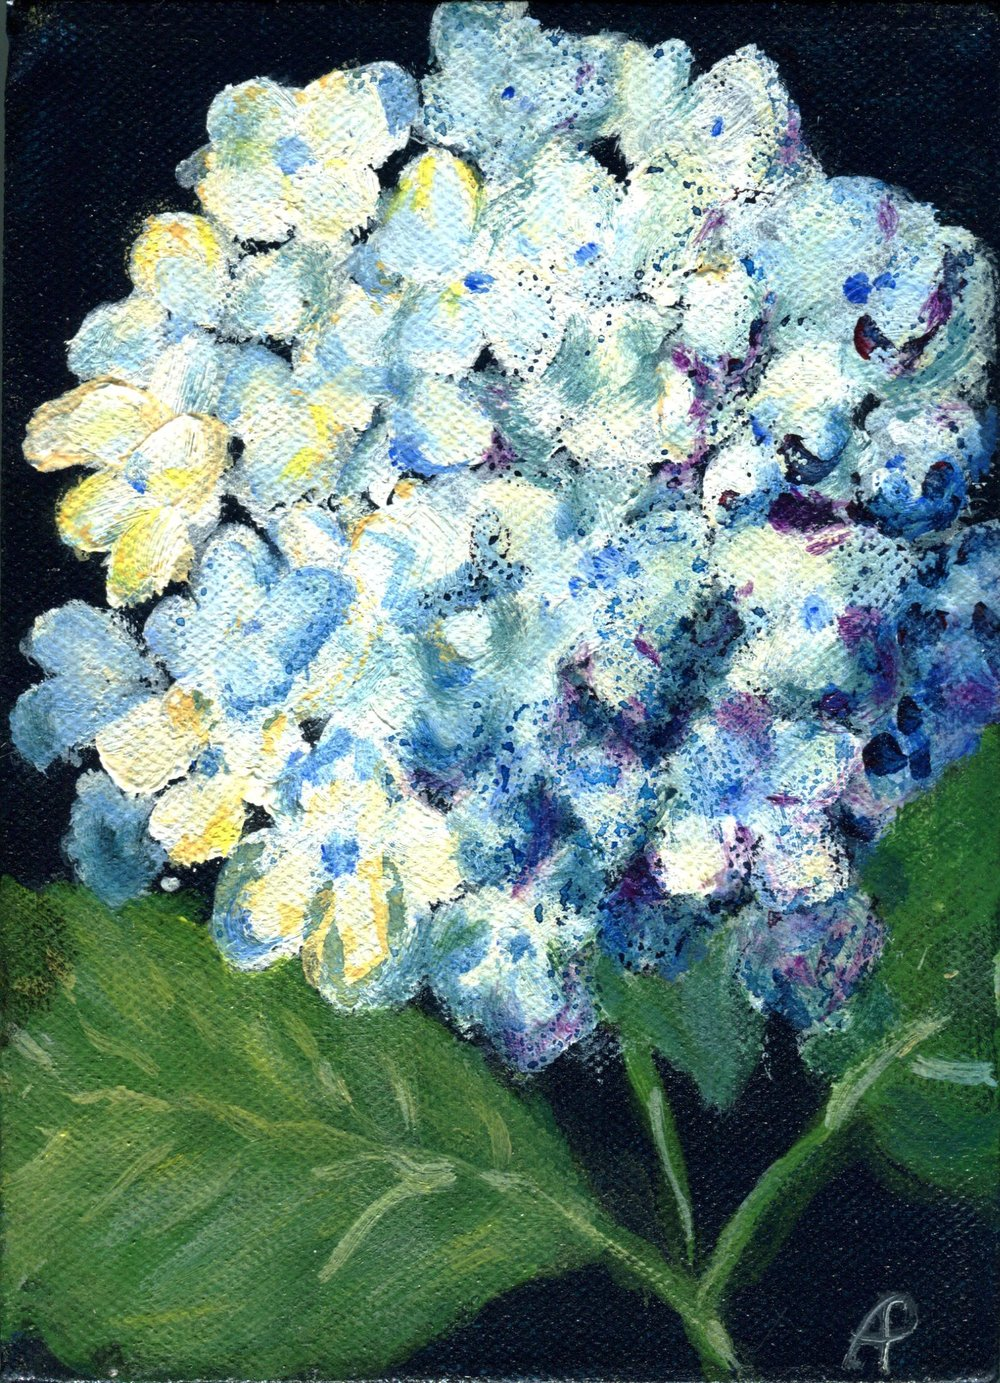 23B ANNA PETTIFER, HYDRANGEA, ACRYLIC ON CANVAS